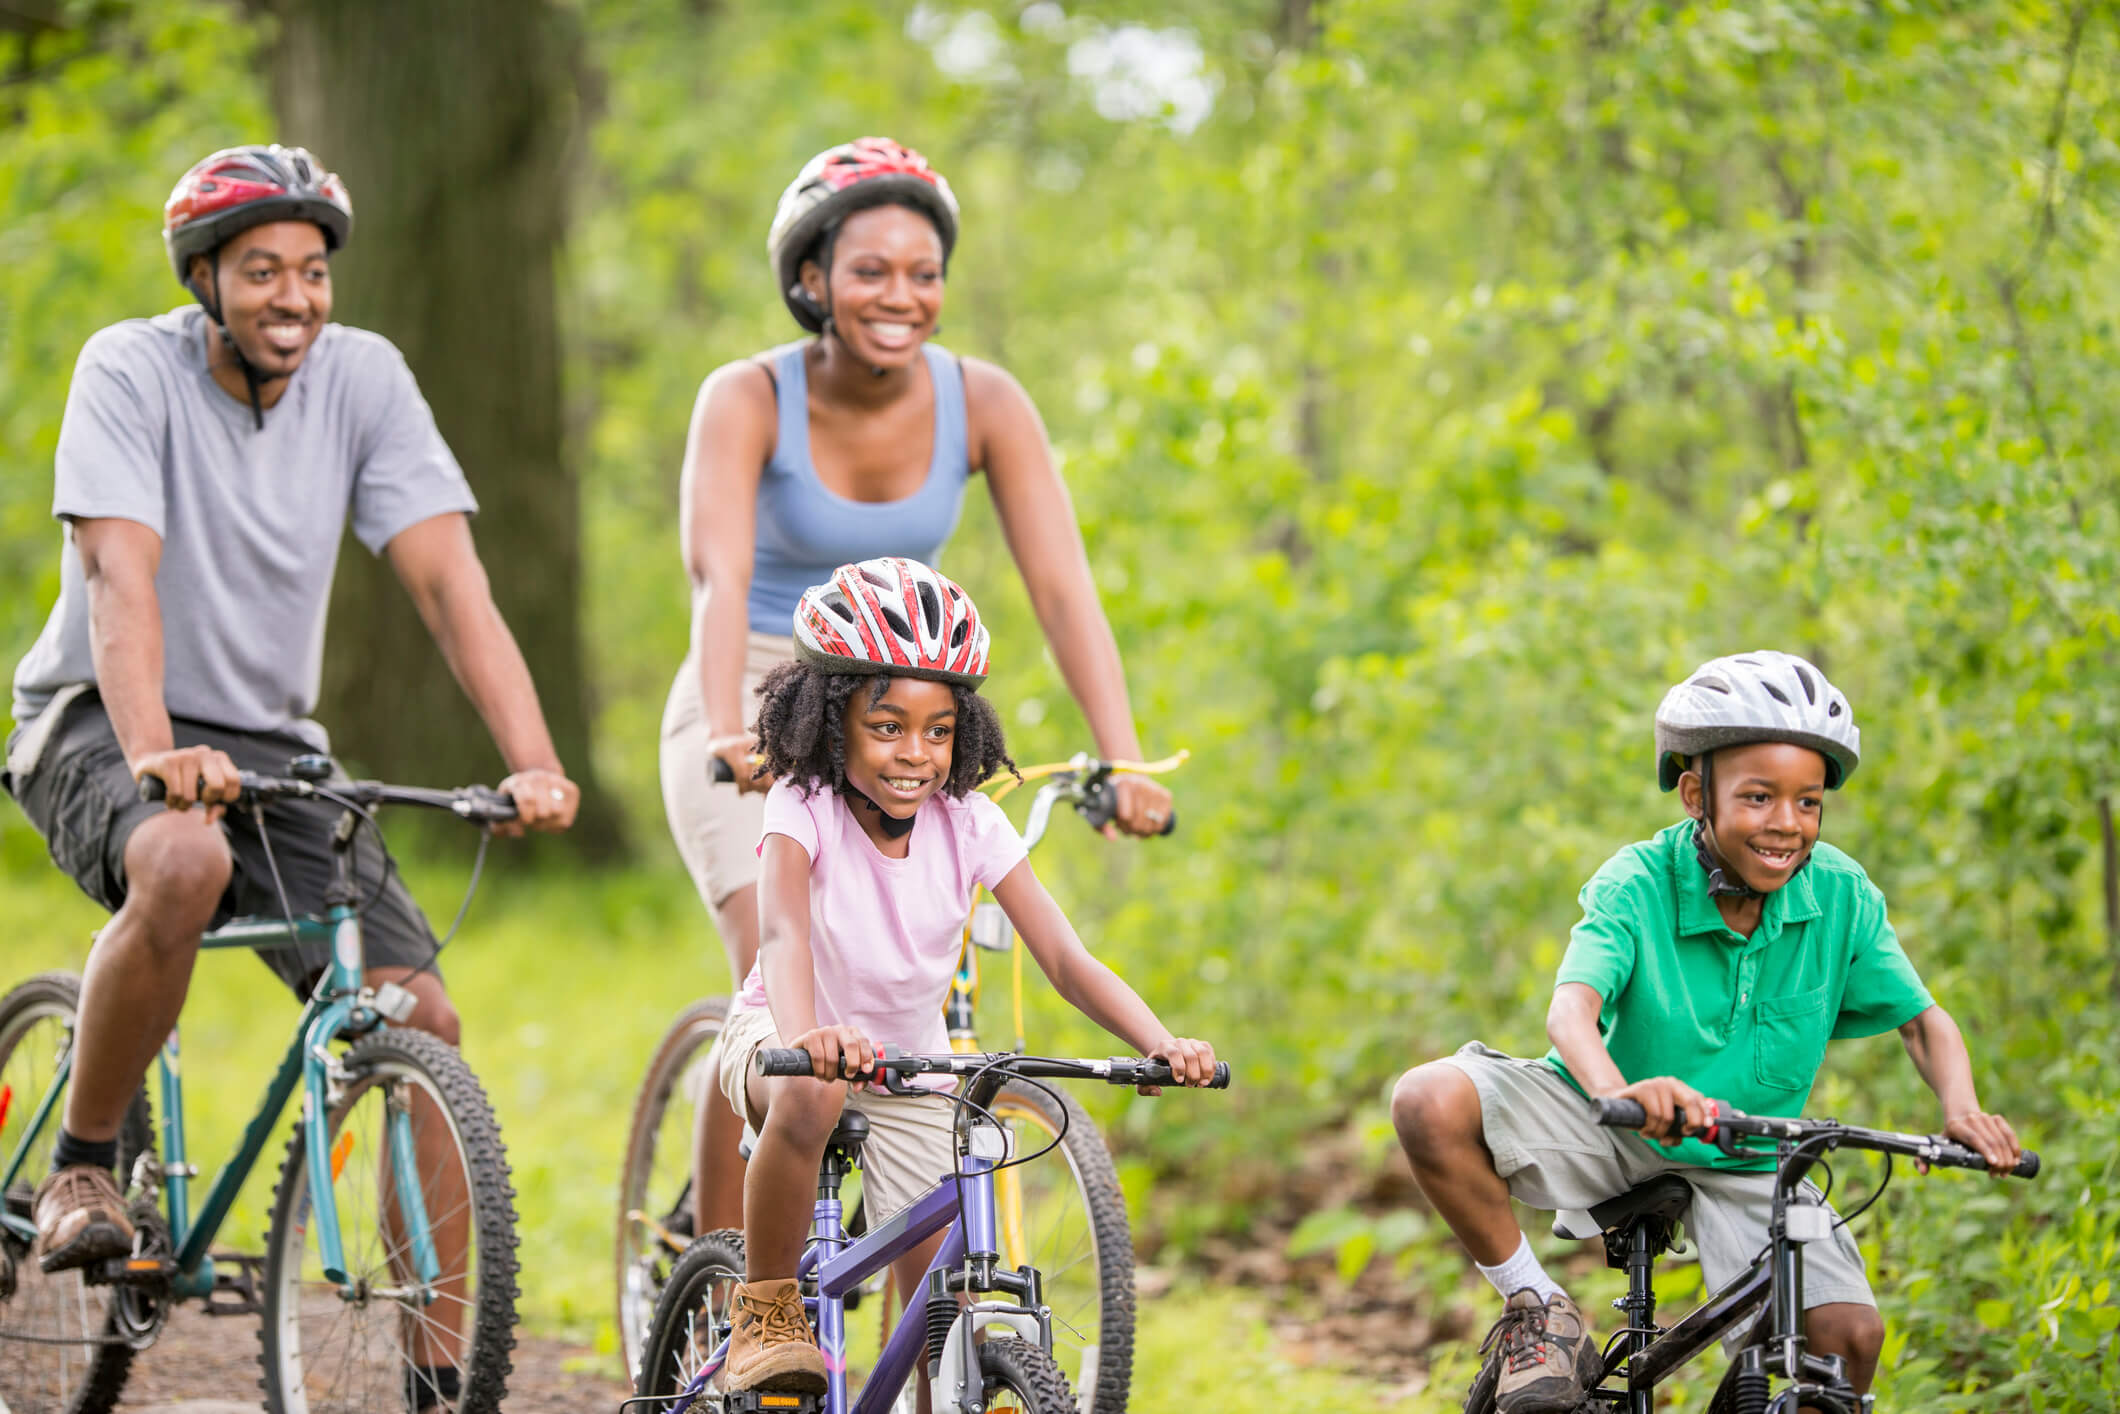 A family is going on a bike ride through the woods while on summer vacation.